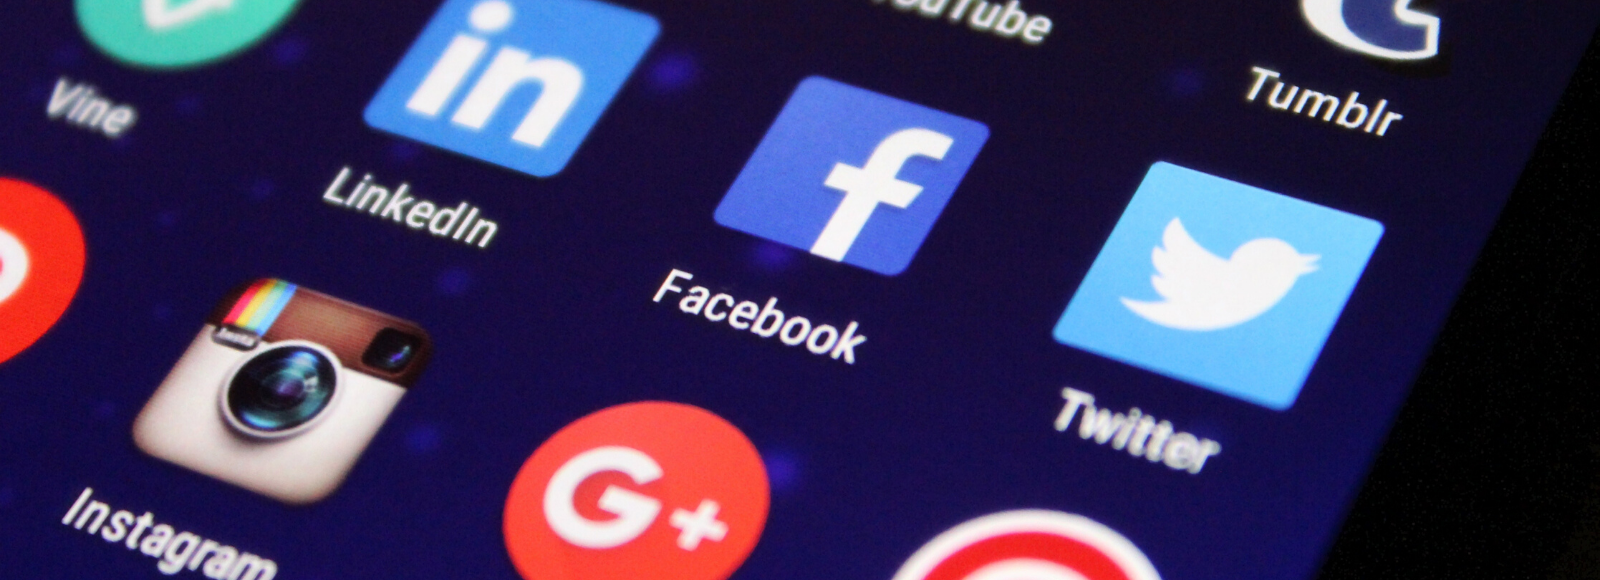 JMS Offering News and Social Media Course to Cover COVID-19 and 2020 Election